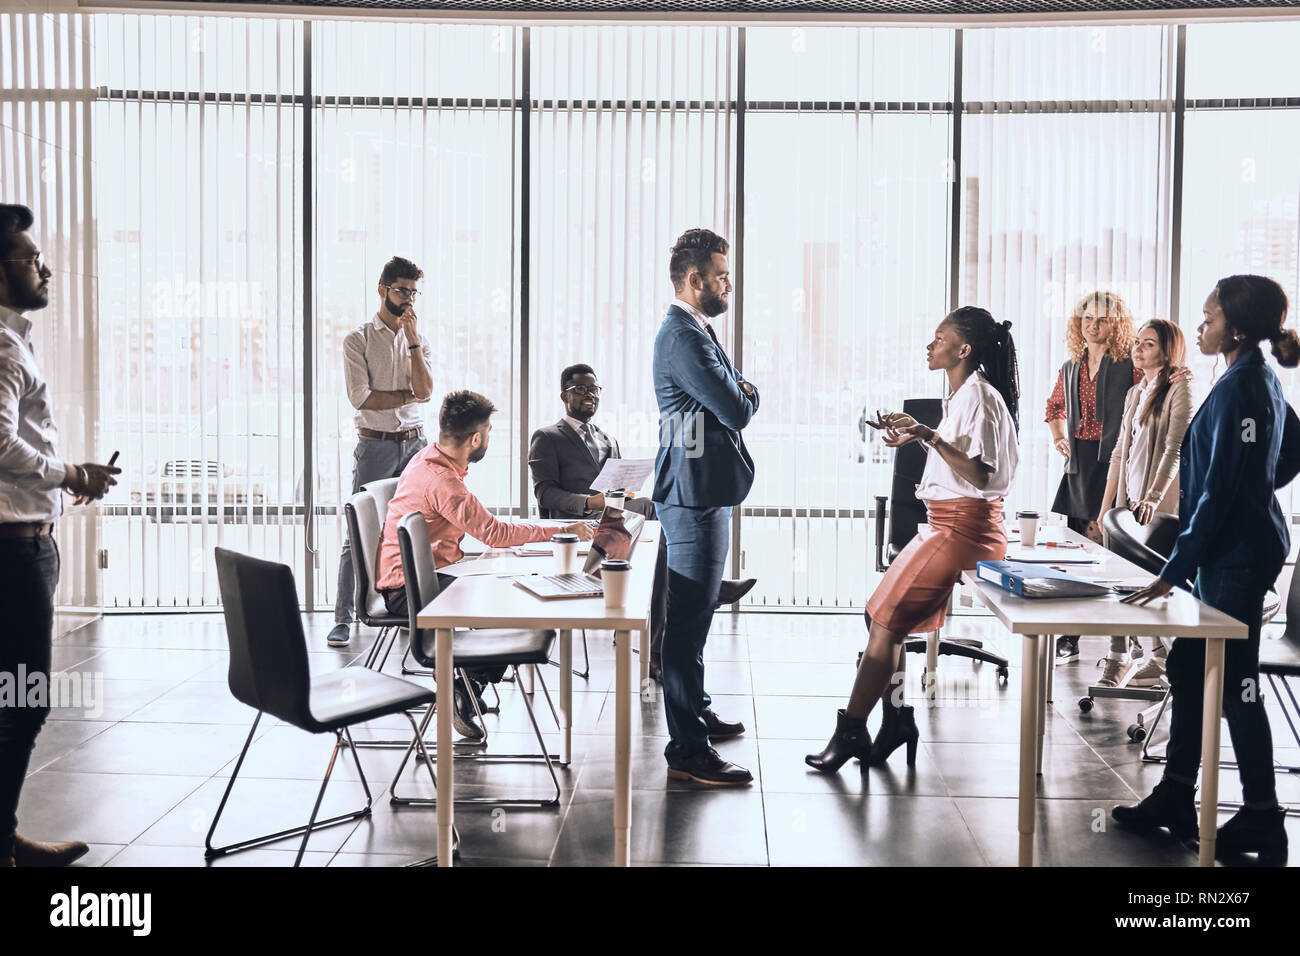 beautiful woman and handsome man talking in the office room while their colleagues are looking at them. conversation. woman and man sharing with exper - Stock Image